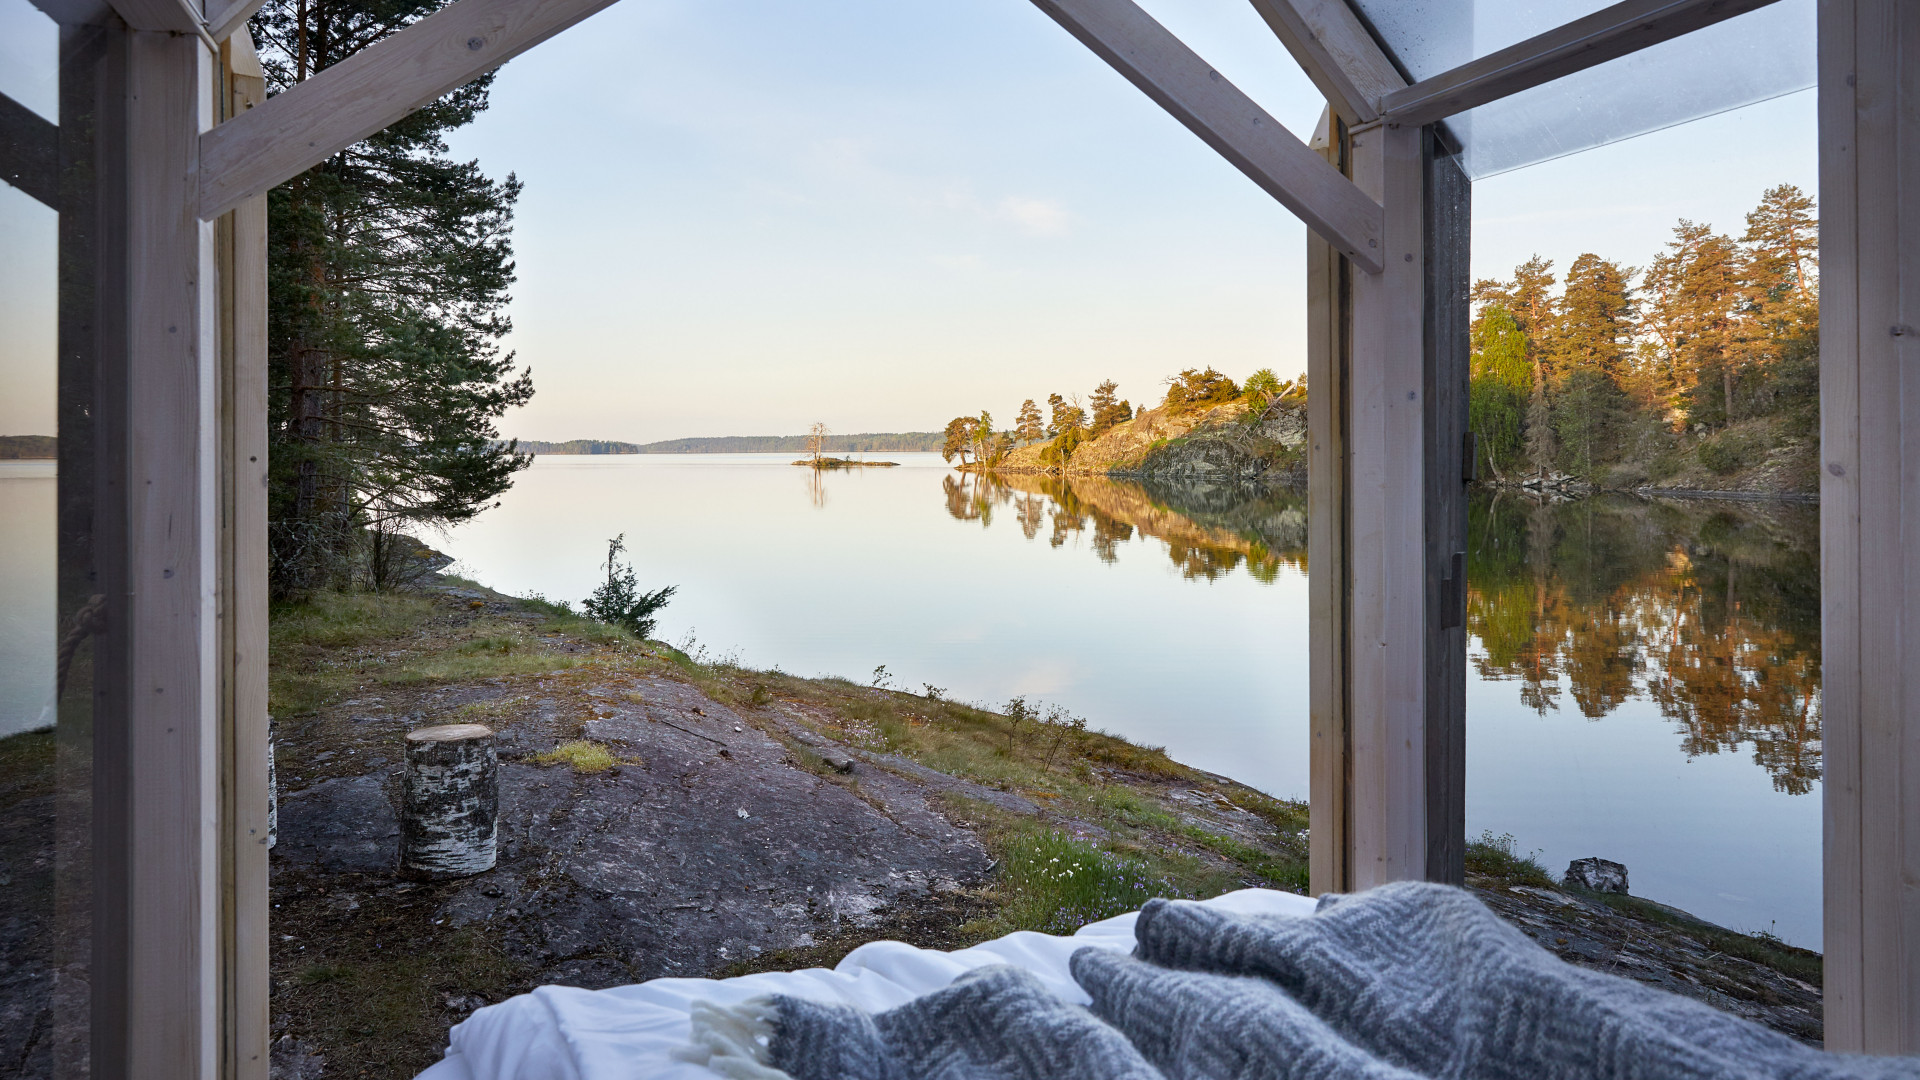 72 Hour Cabin on Henriksholm island